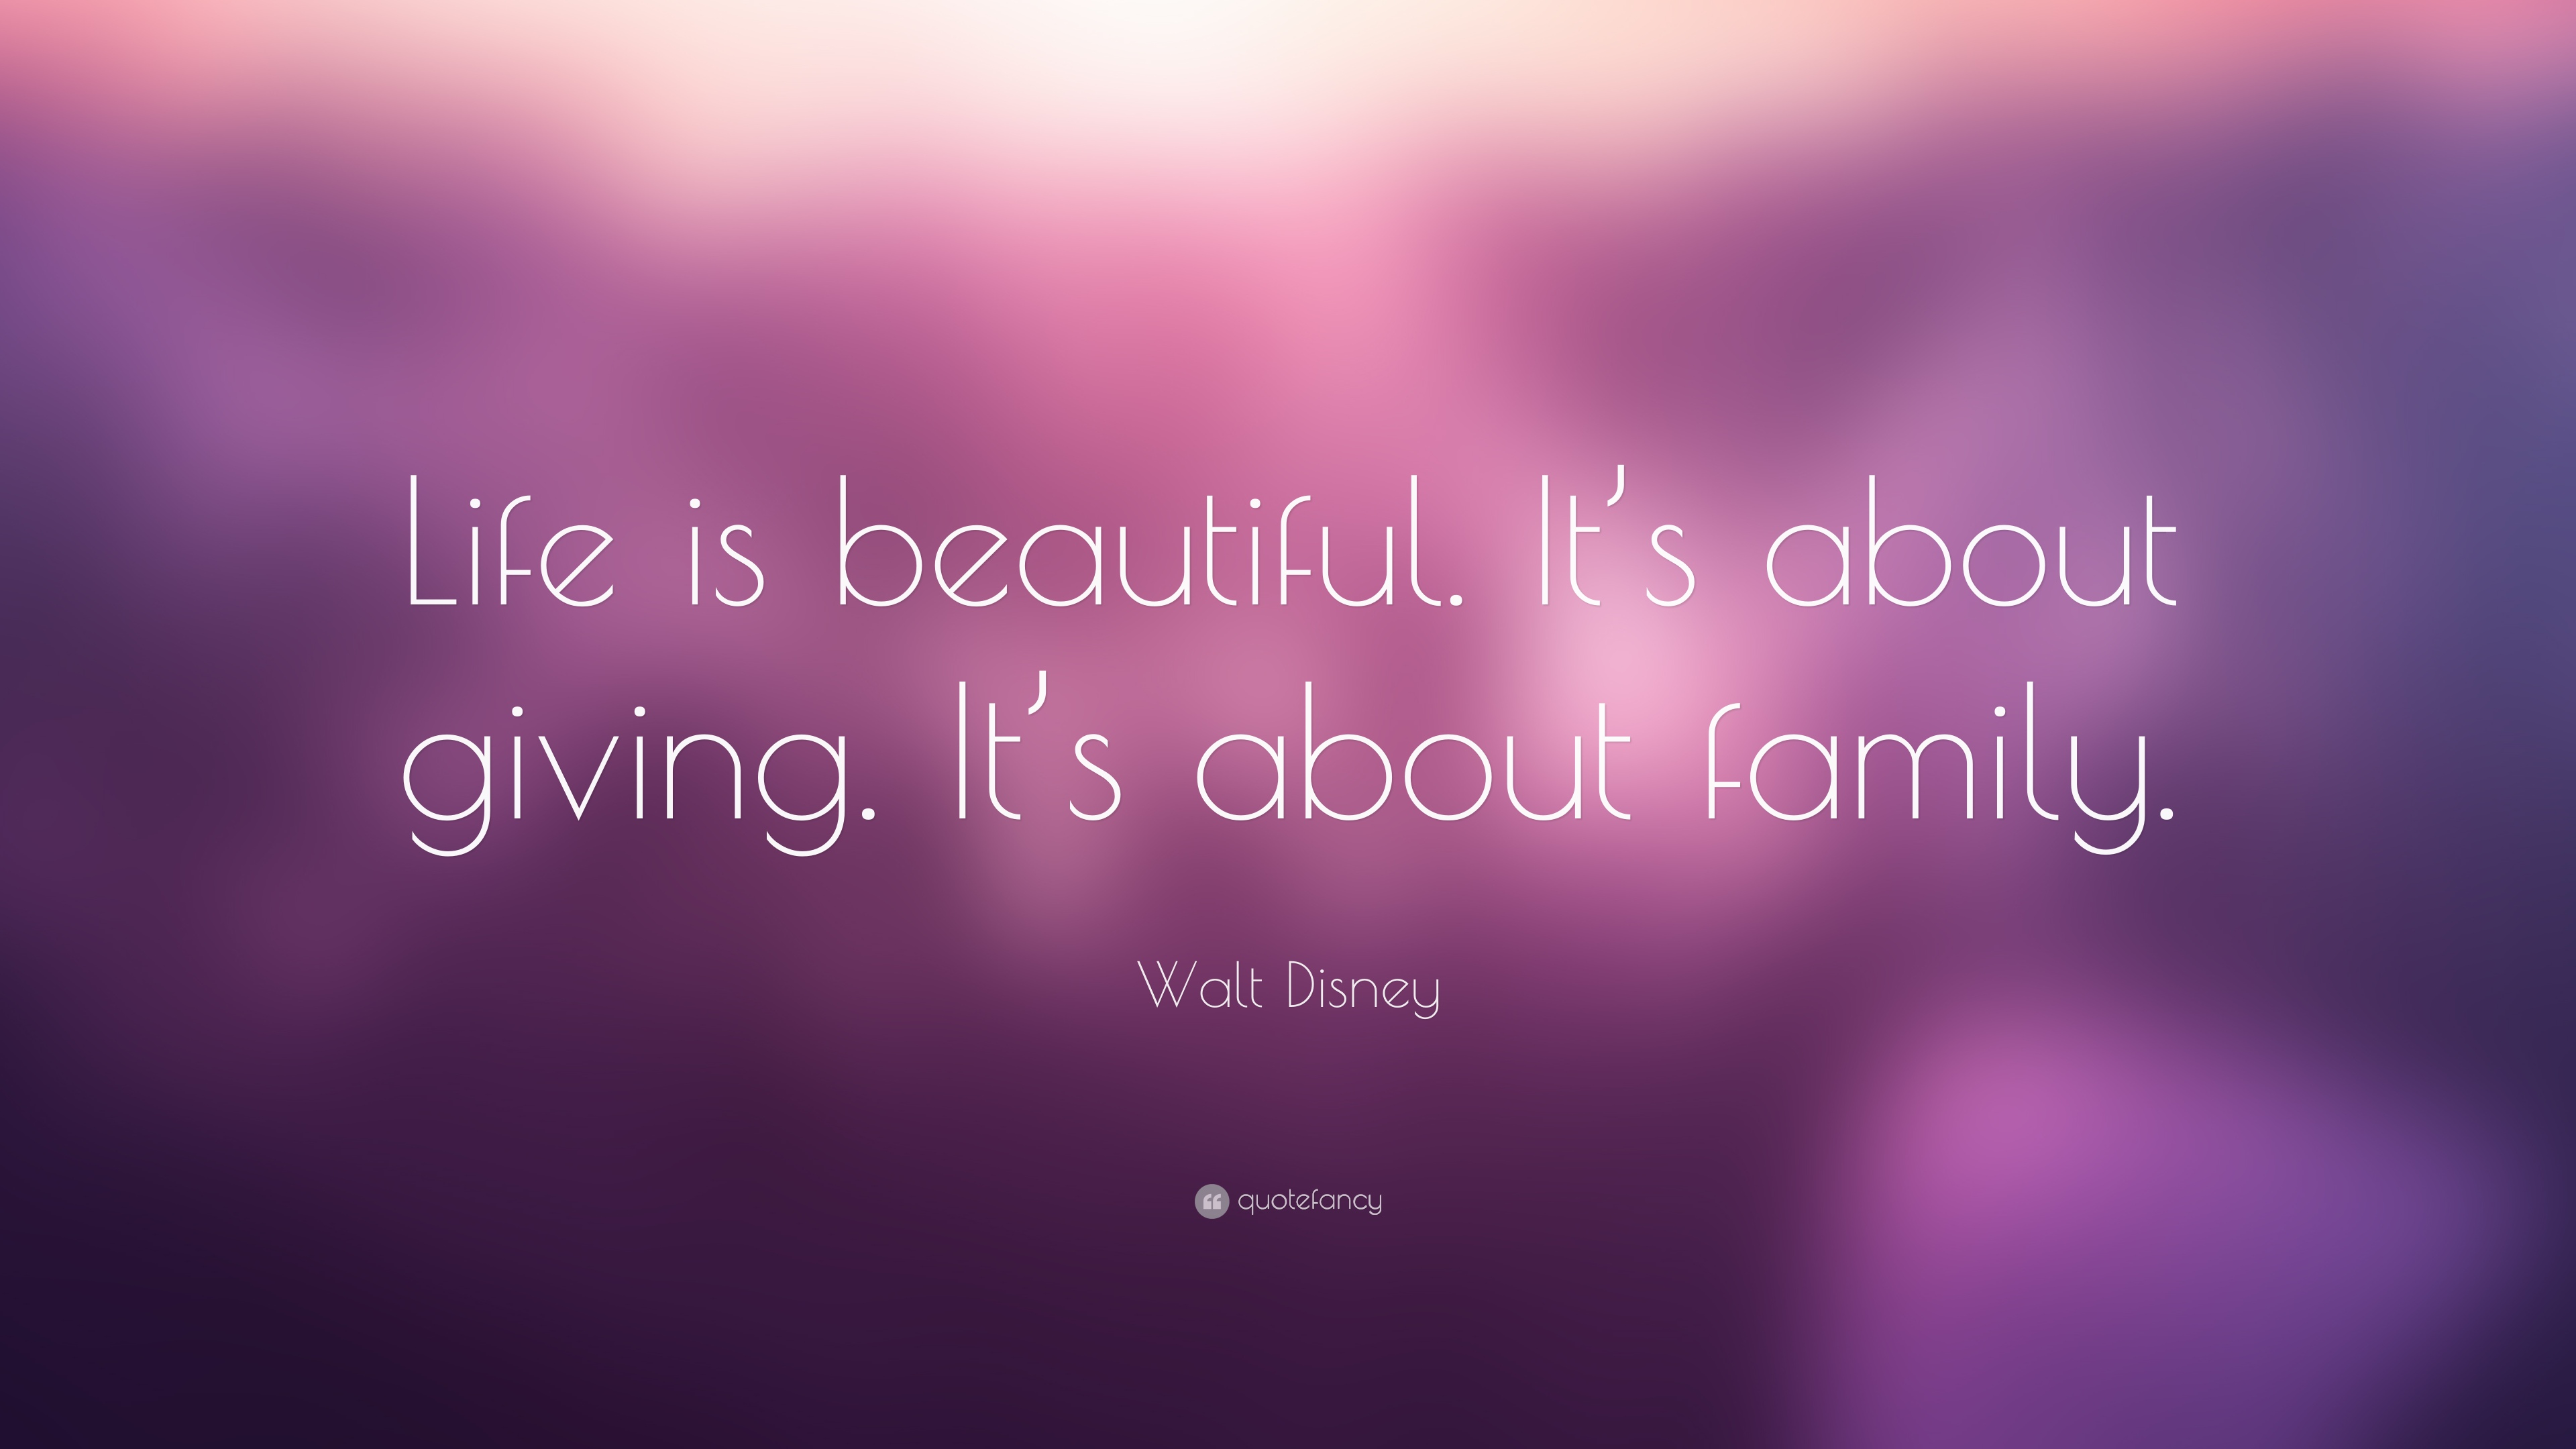 Walt Disney Quote Life Is Beautiful Its About Giving Its About